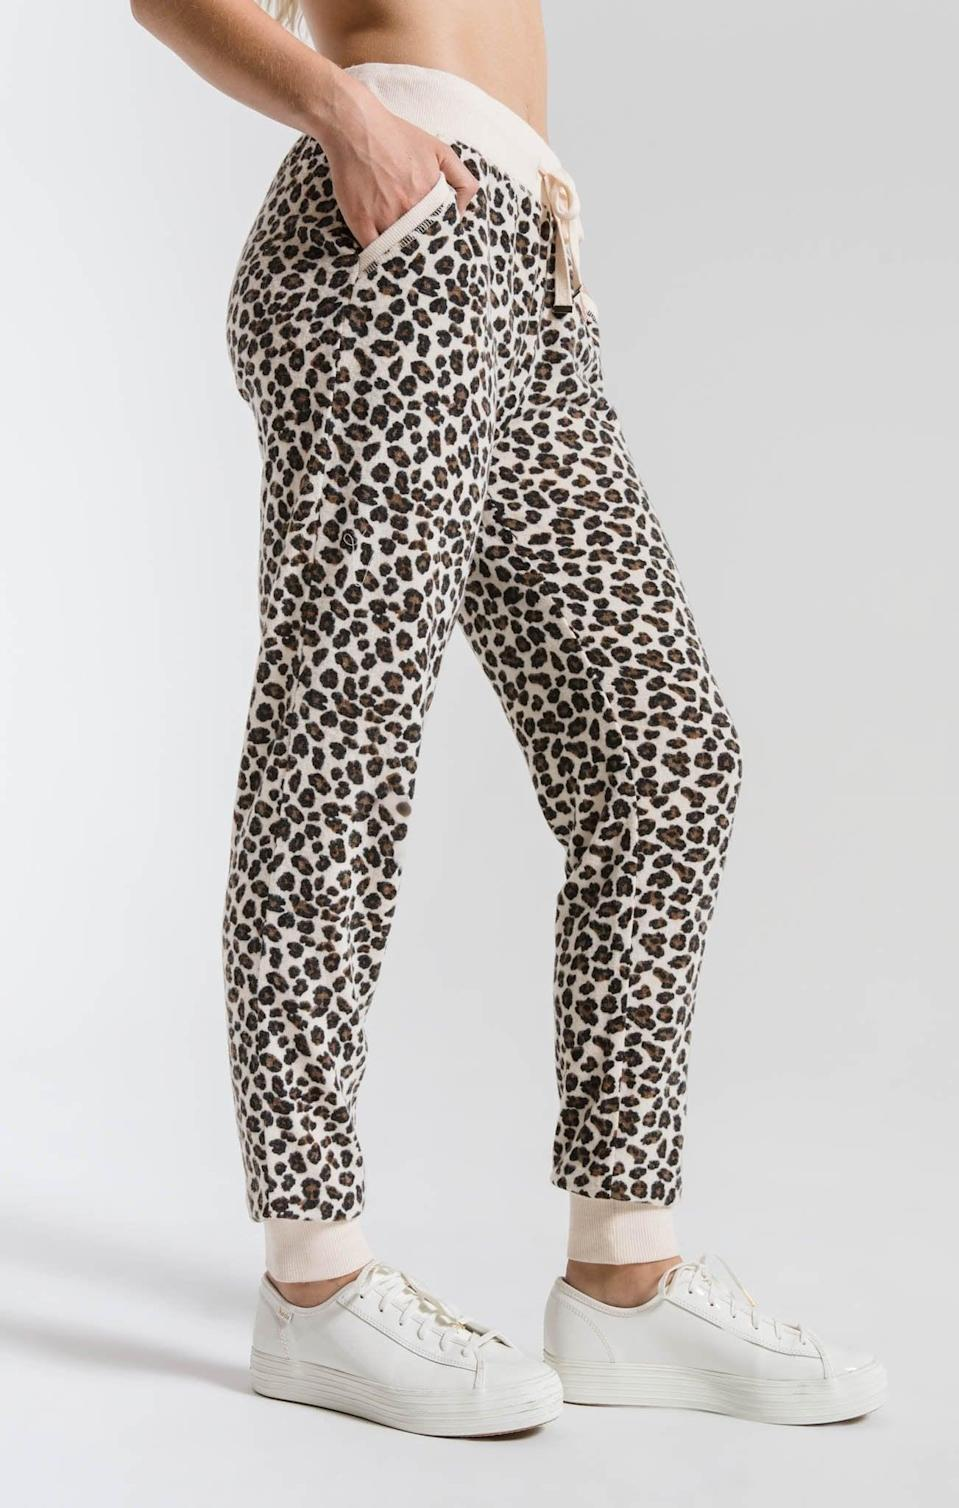 <p><span>The Brushed Leopard Jogger</span> ($62) is the type of gift you give someone toward the end of their pregnancy so they have something to look forward to. Since most of their pre-baby clothing won't fit and they'll likely want to live in cozy clothes, this leopard-print pant is a perfect option. She can throw on cute sneakers and head outside with her stroller looking super chic.</p>